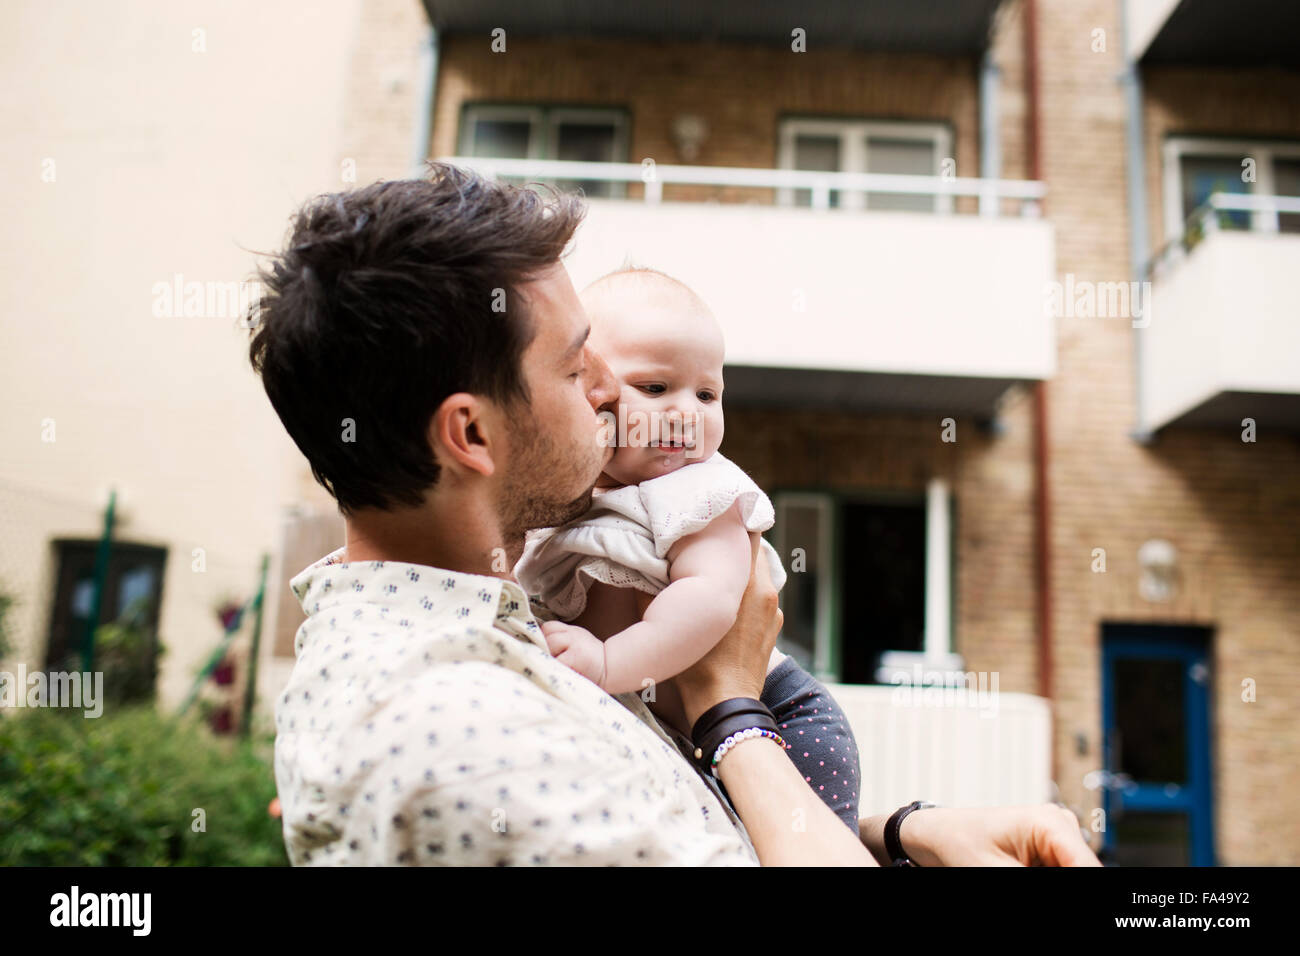 Loving father kissing baby girl outside building - Stock Image